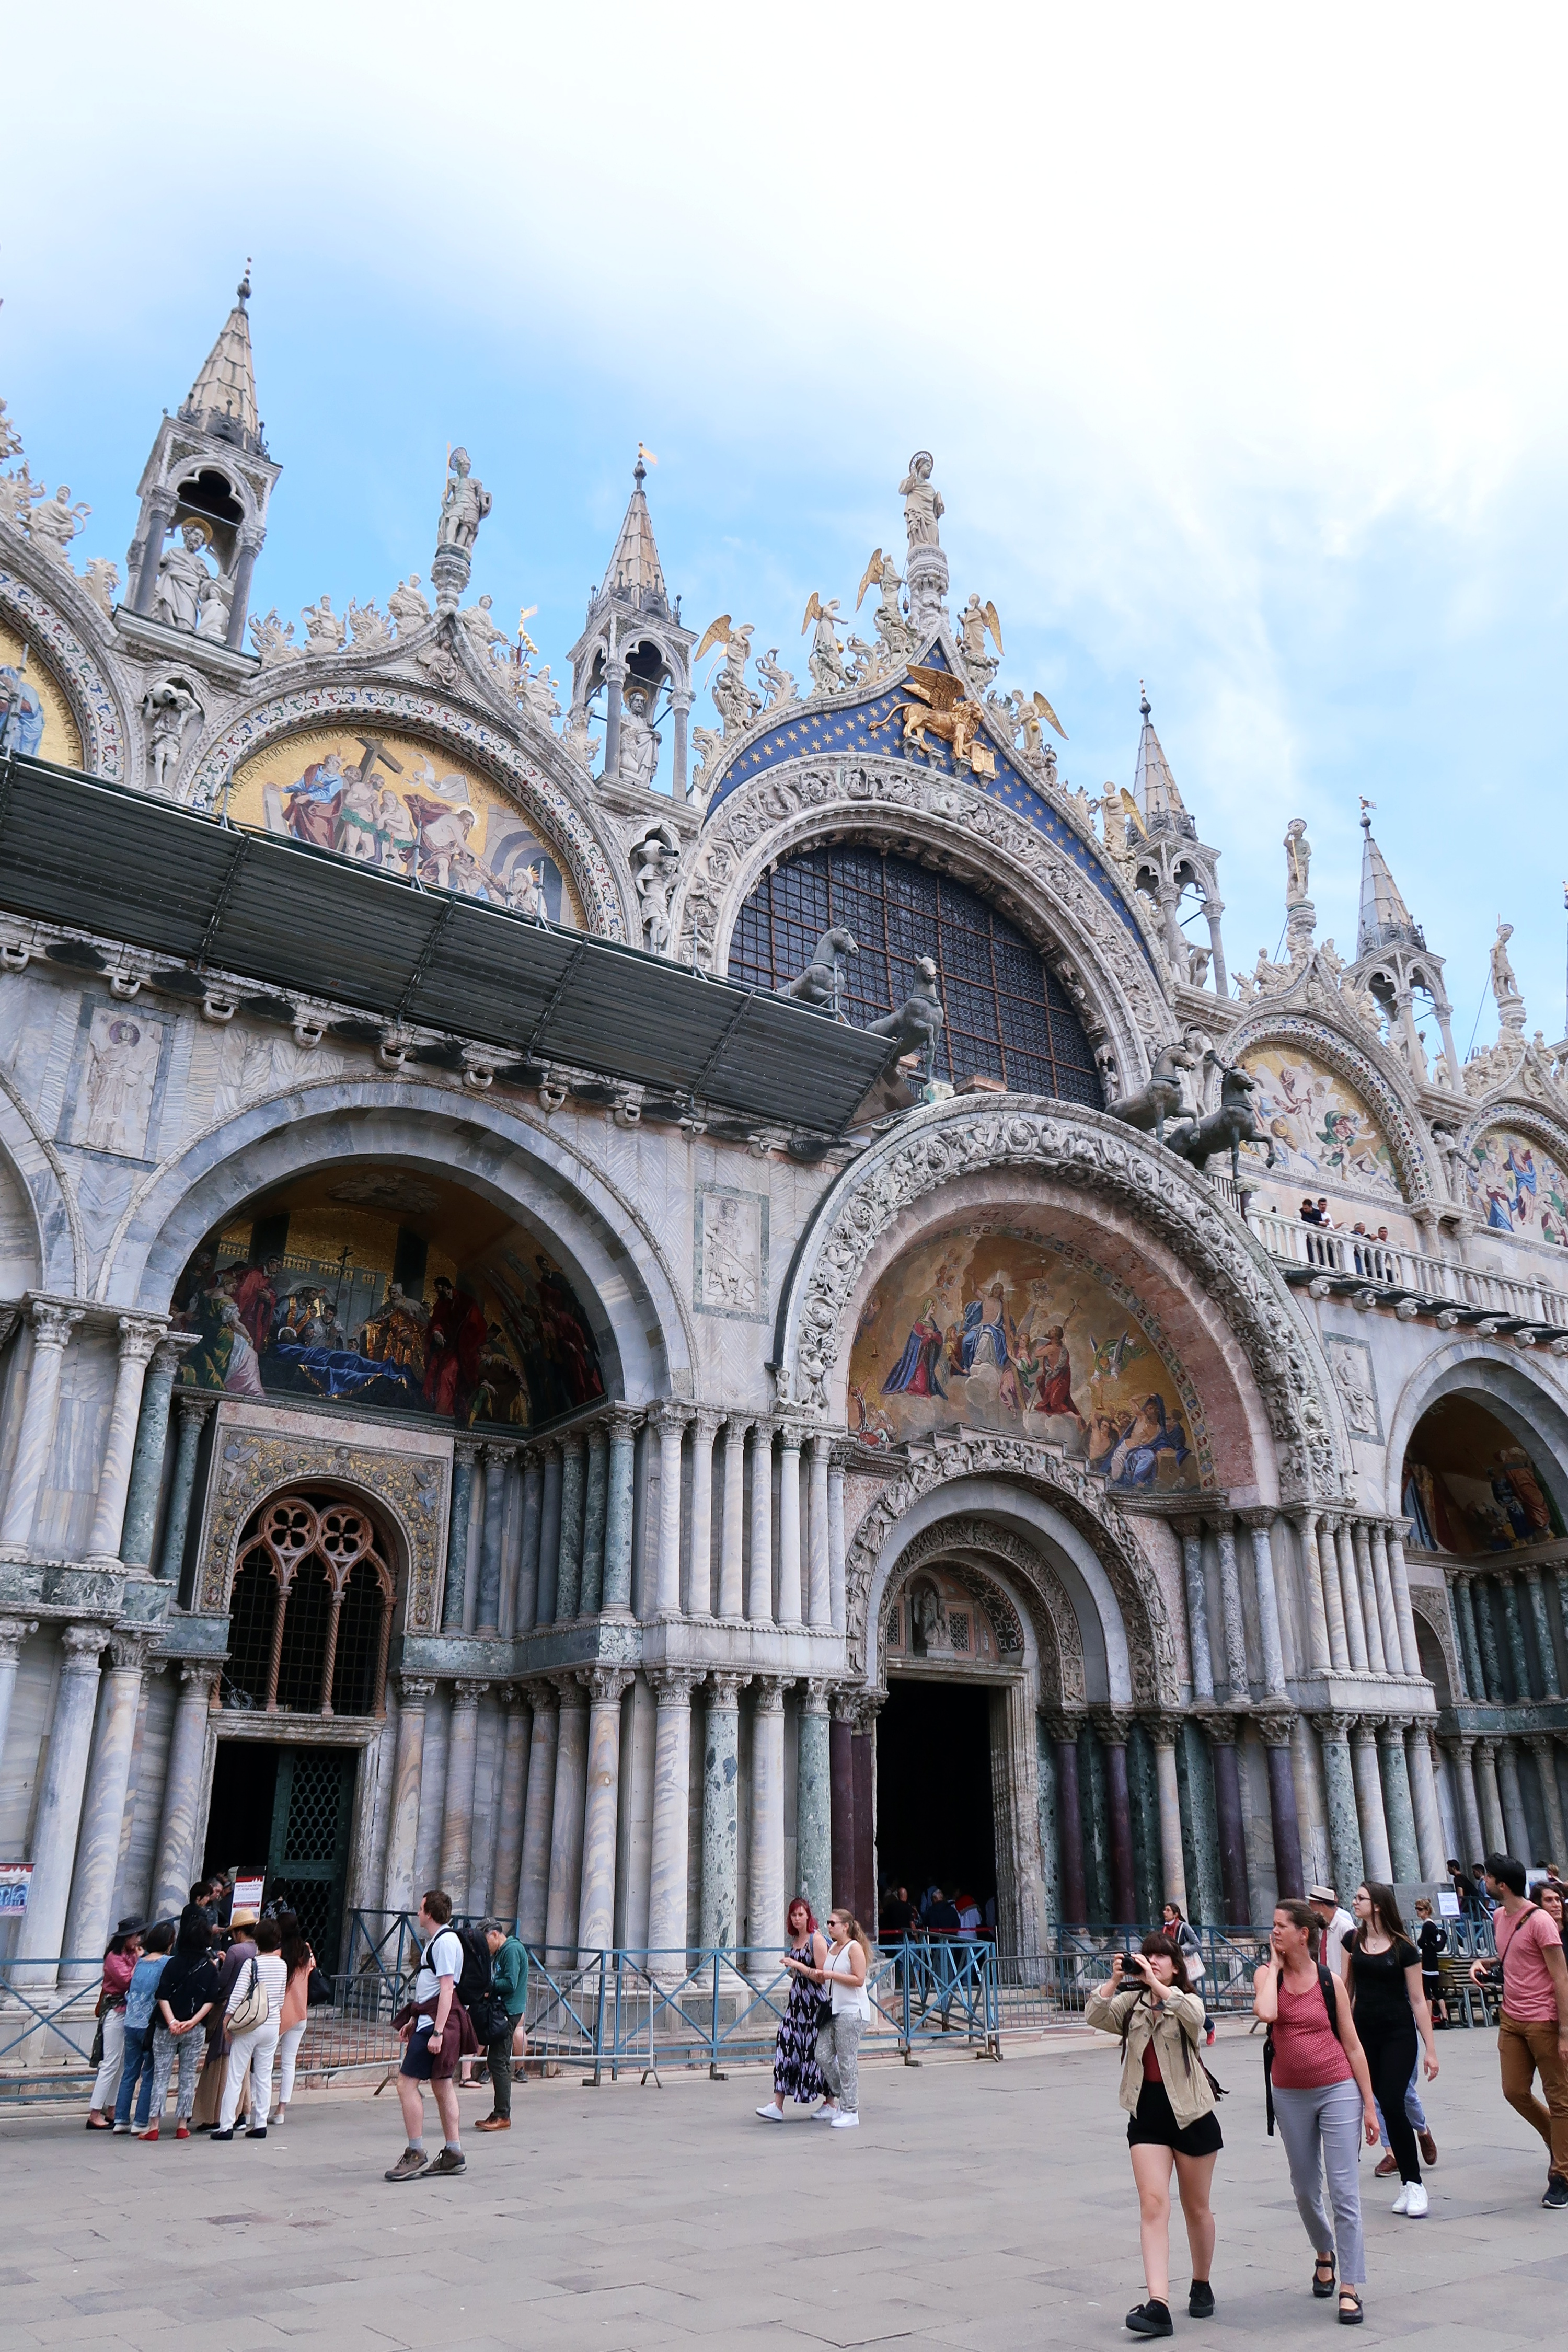 Basilica San Marco Piazza San Marco Venice - Travel Blogger - The LDN Diaries